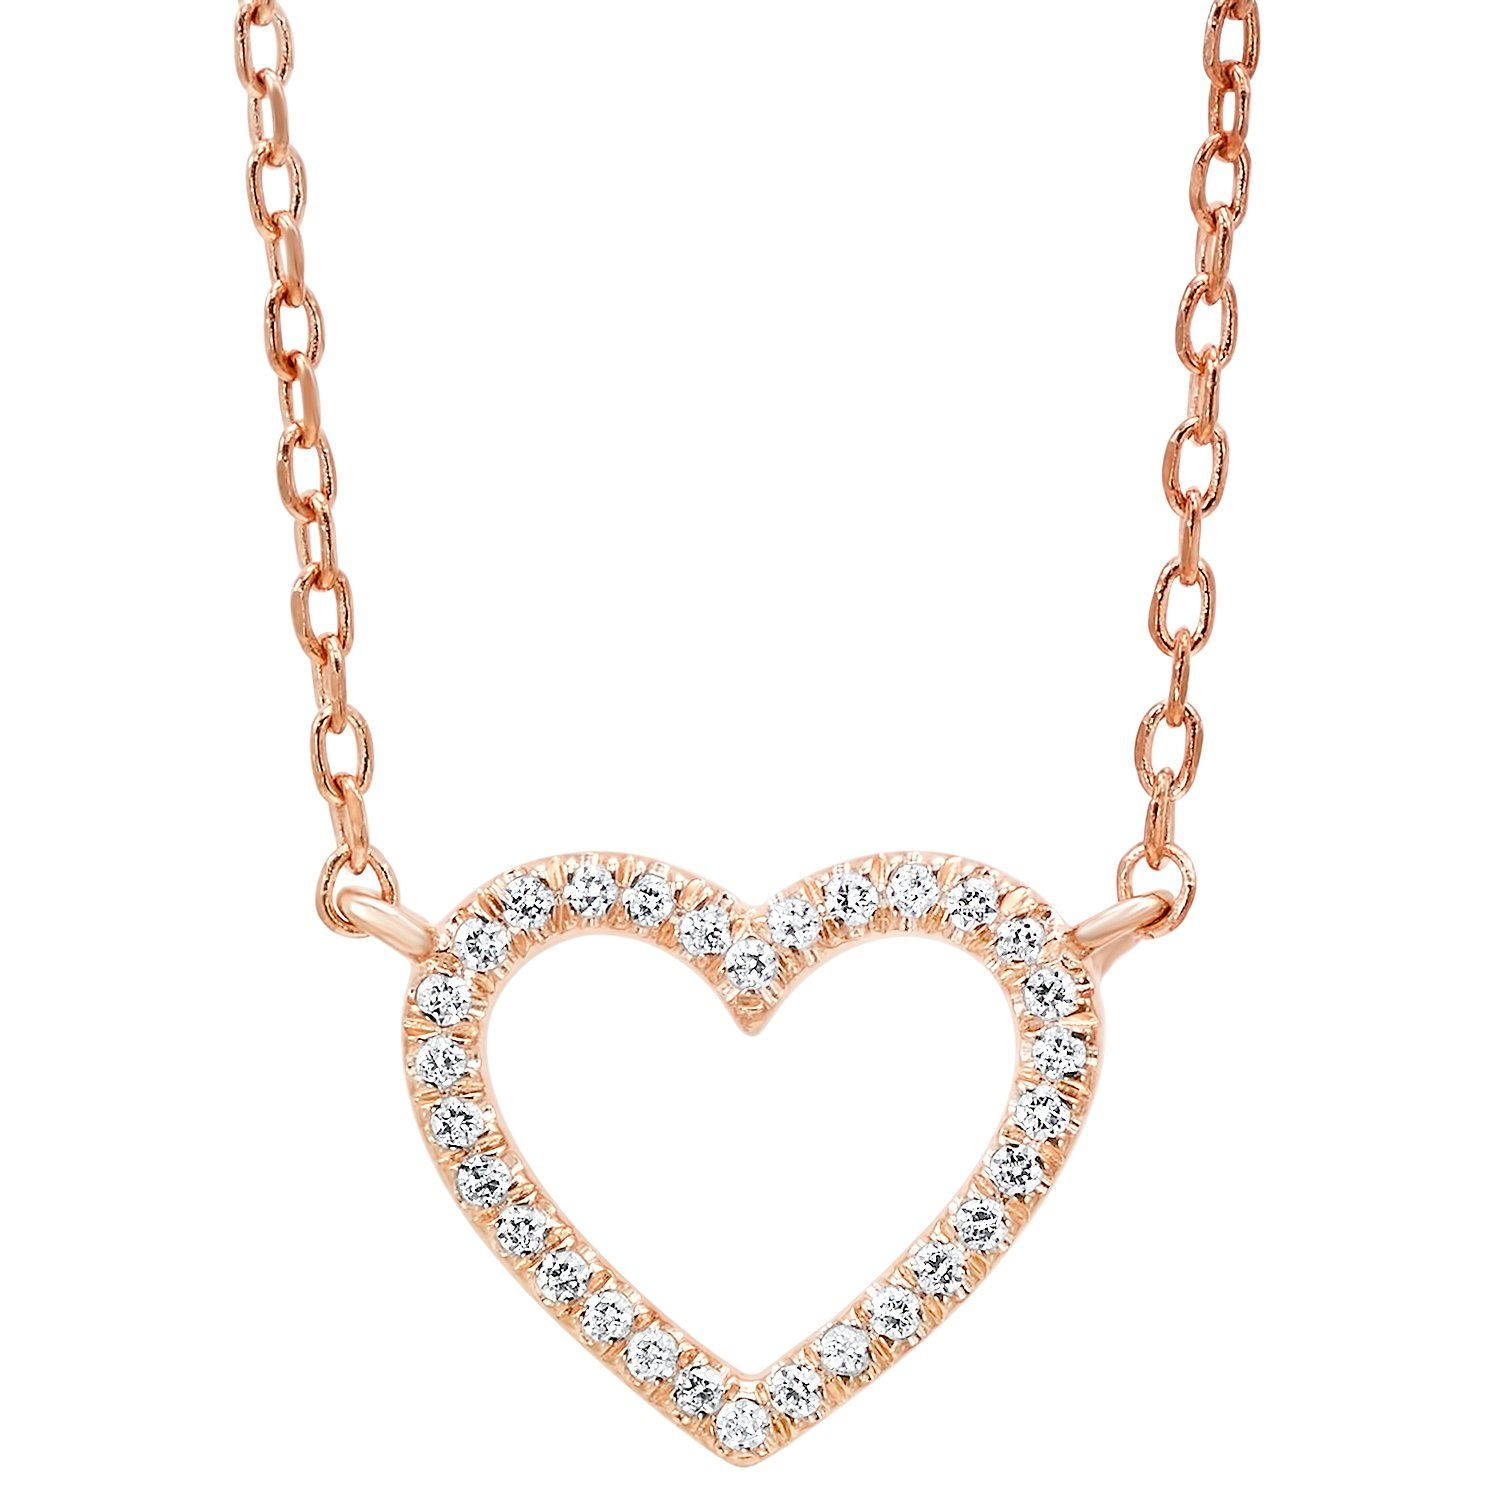 33c68cd984ef9 14K Rose Gold Dainty Heart Shaped Pave Diamond Necklace | Products ...